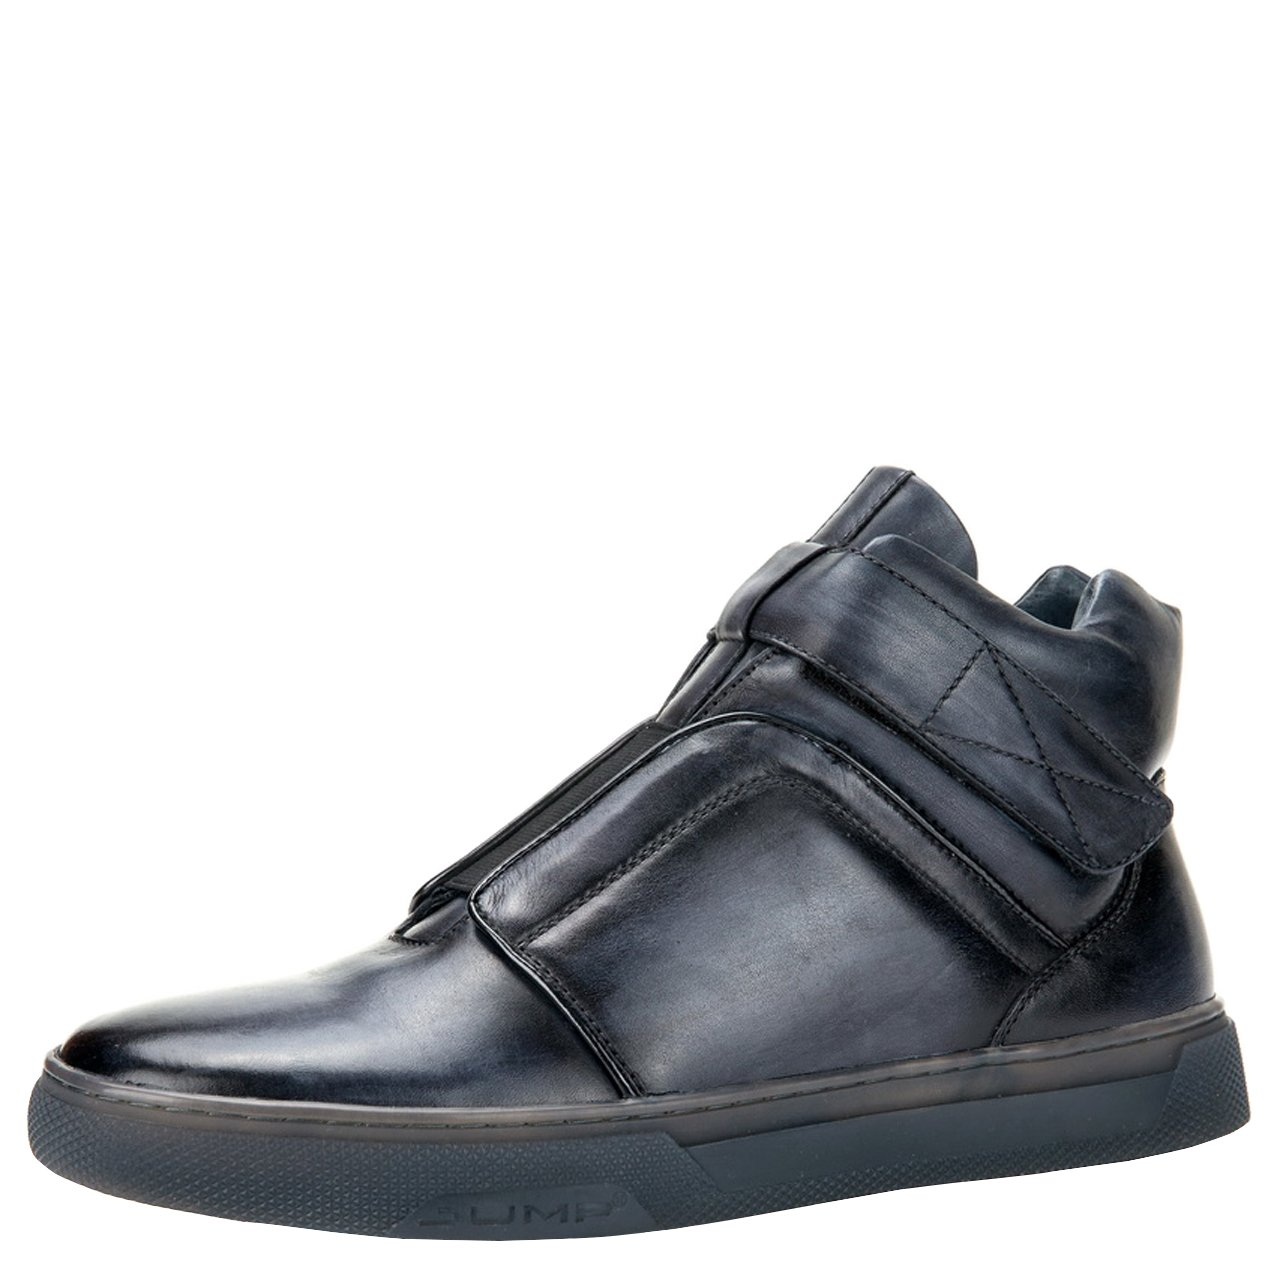 JUMP NEWYORK Men's Scully High-Top Fashion Sneaker Grey 15 D US